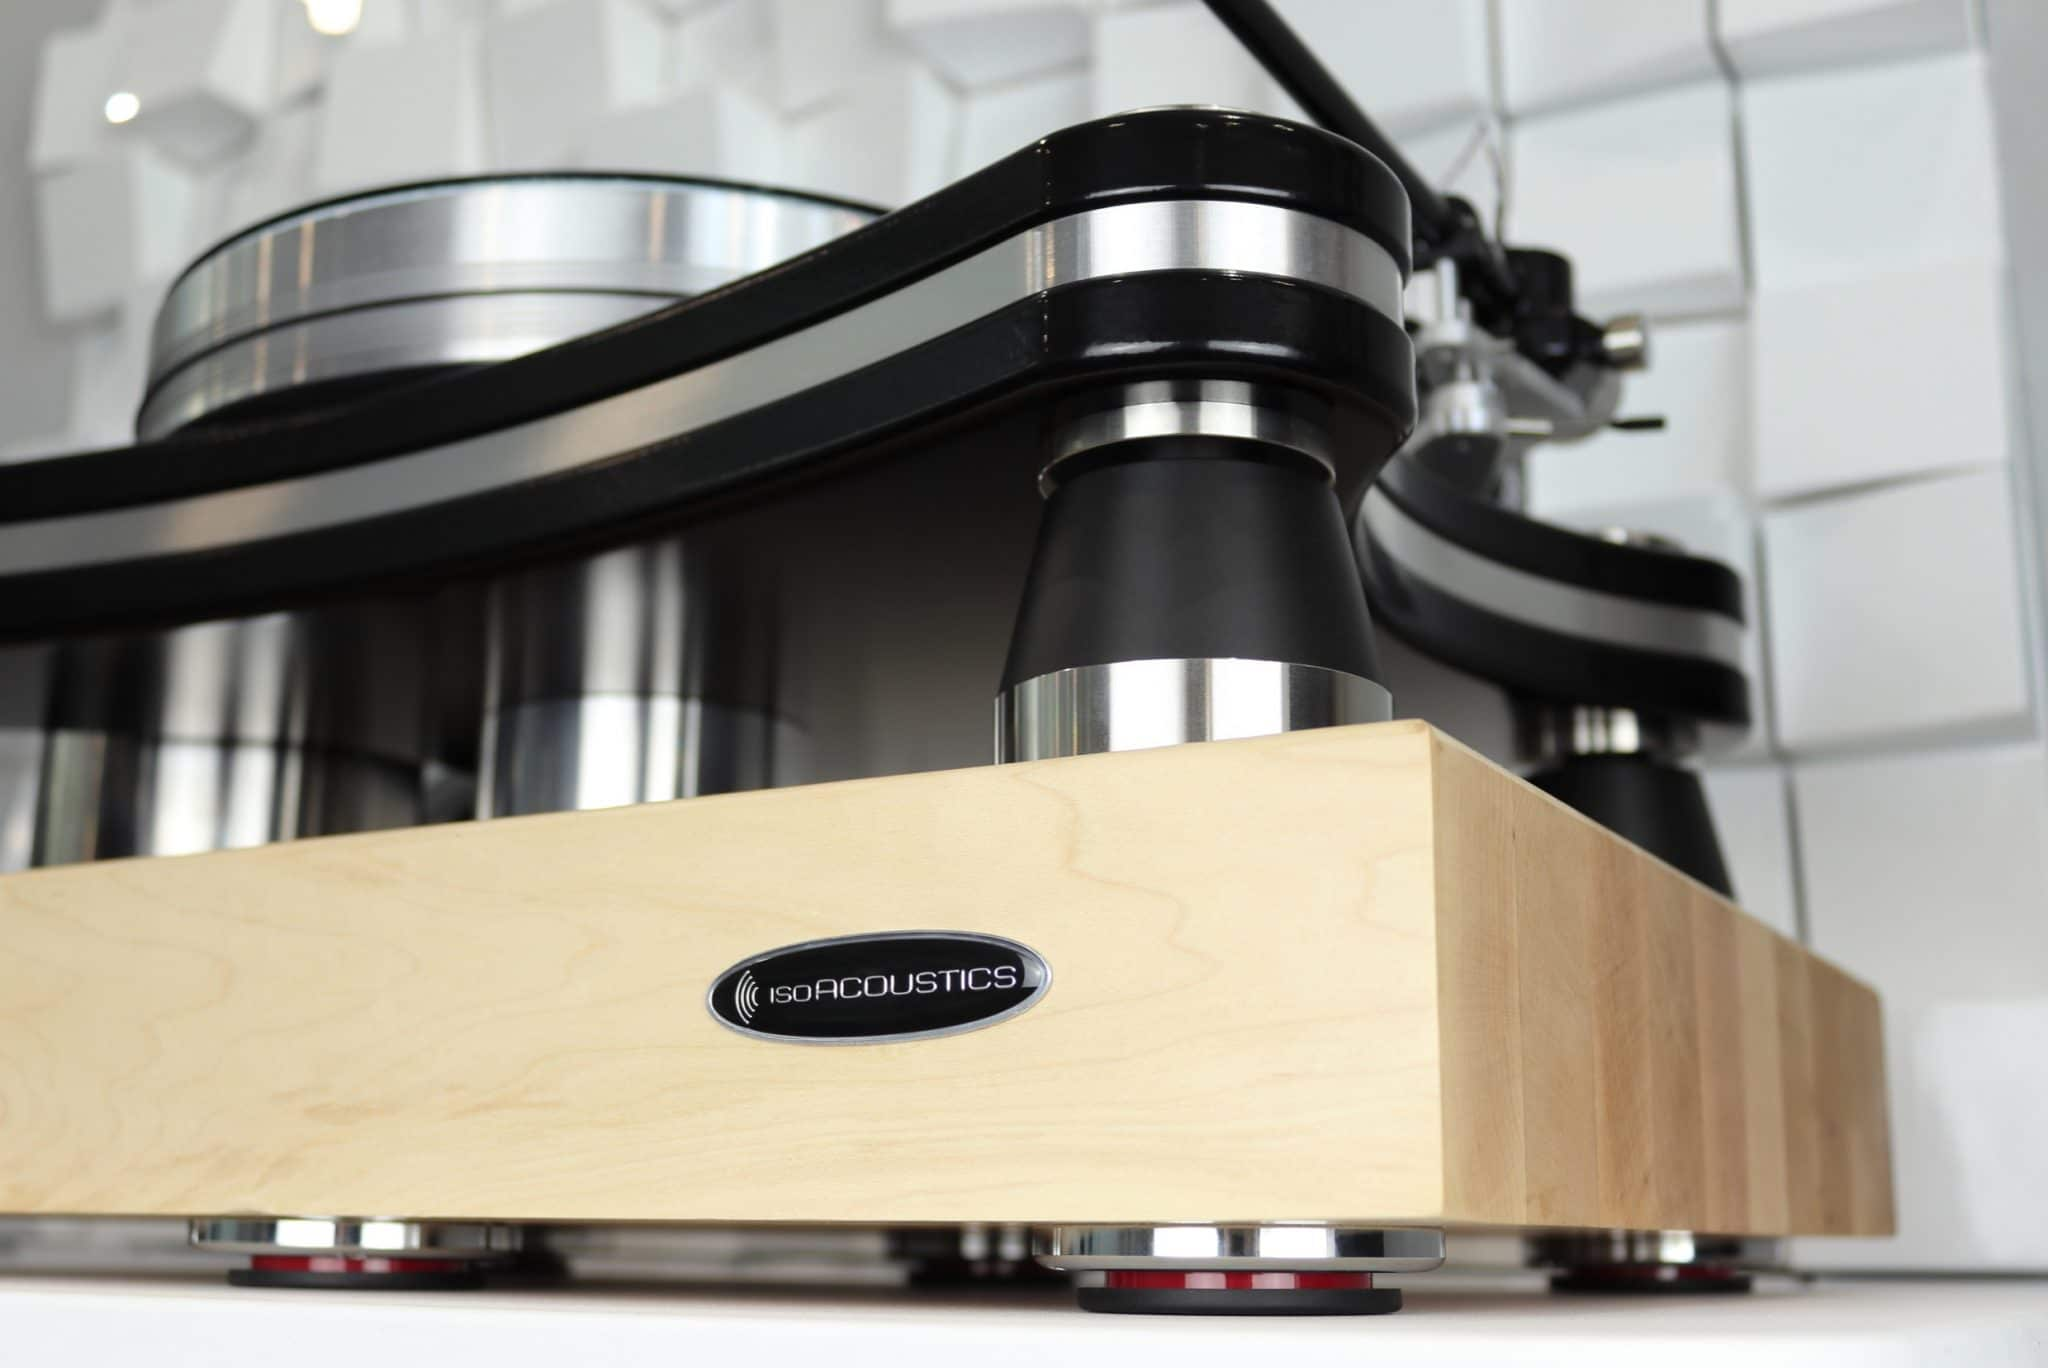 Delos isolation platform From IsoAcoustic